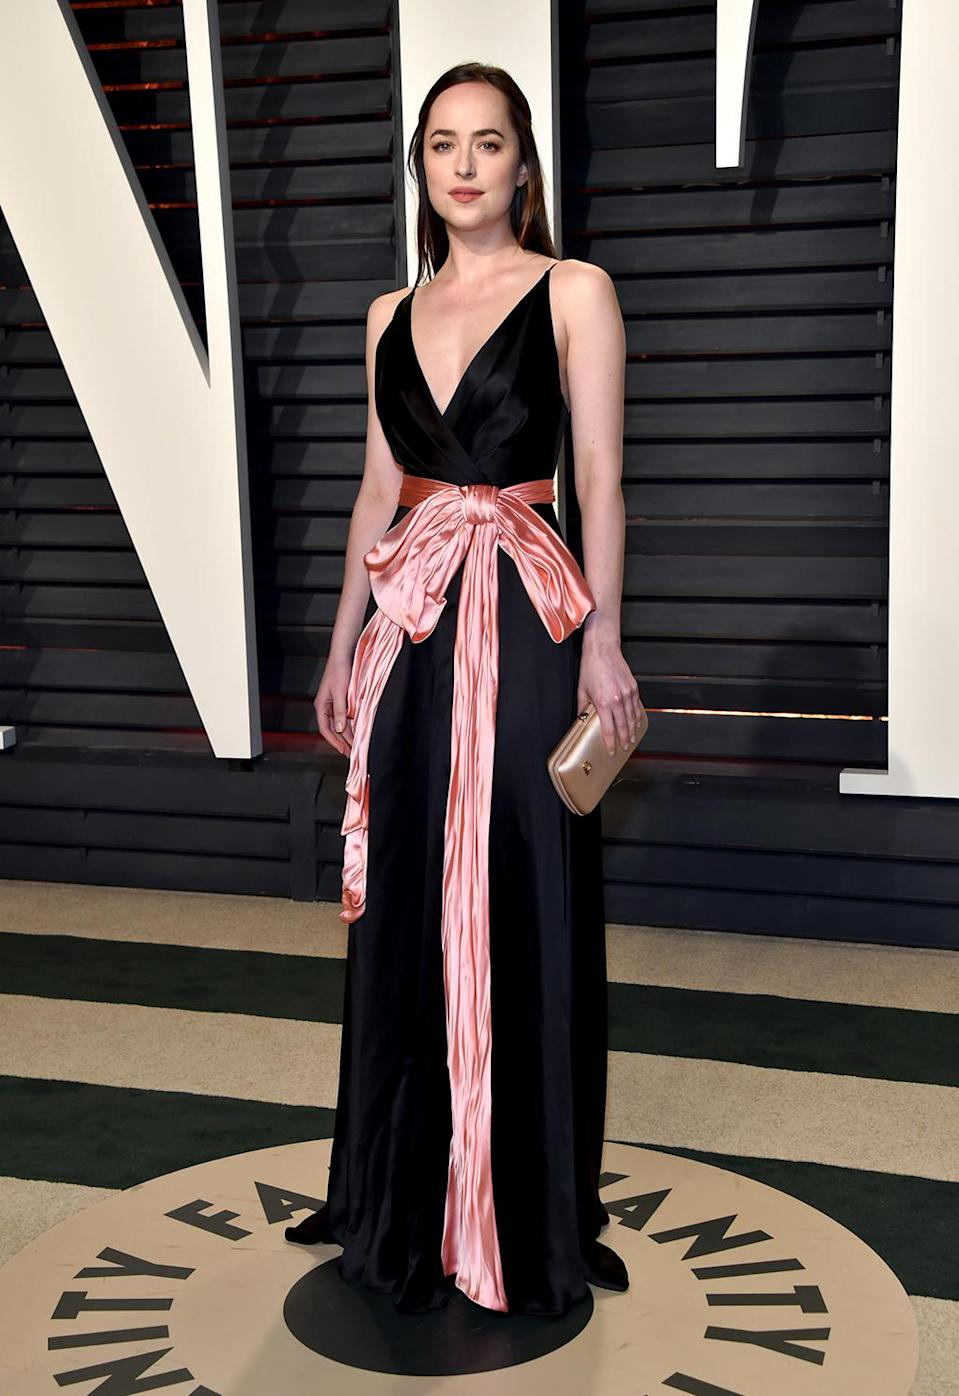 <p>Dakota Johnson attends the 2017 Vanity Fair Oscar Party hosted by Graydon Carter at Wallis Annenberg Center for the Performing Arts on February 26, 2017 in Beverly Hills, California. (Photo by Pascal Le Segretain/Getty Images) </p>